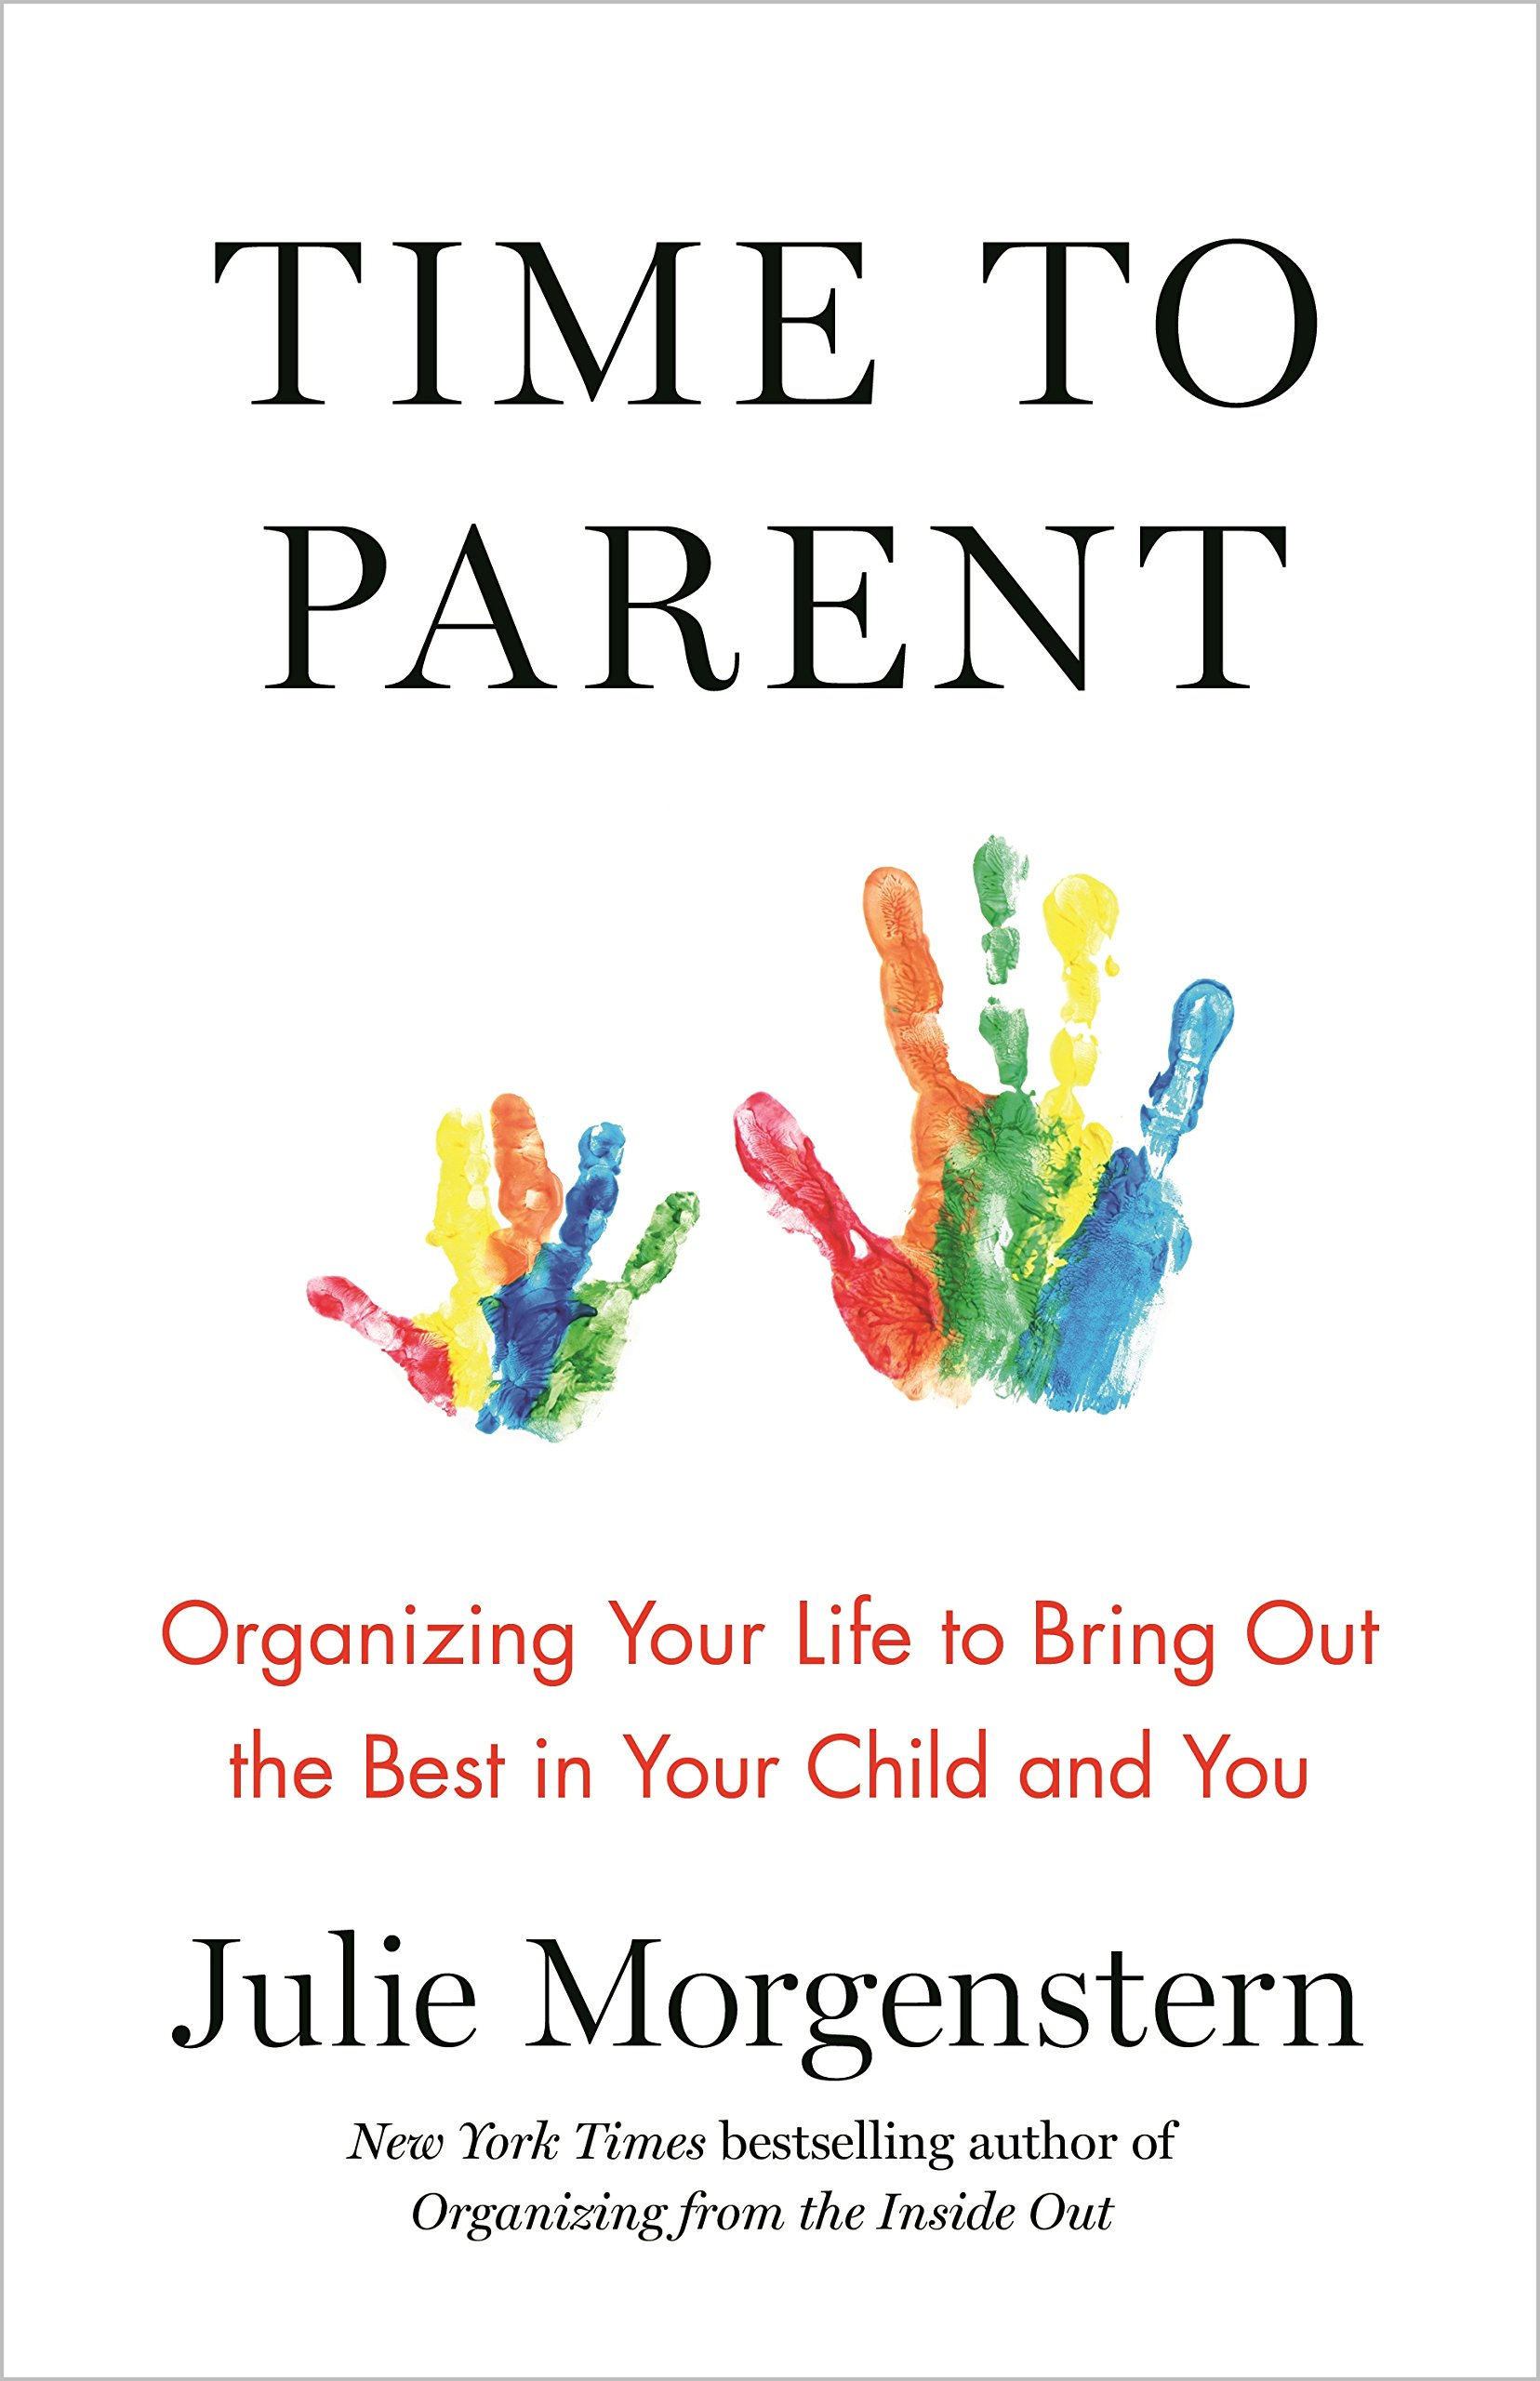 Time to Parent: Organizing Your Life to Bring Out the Best